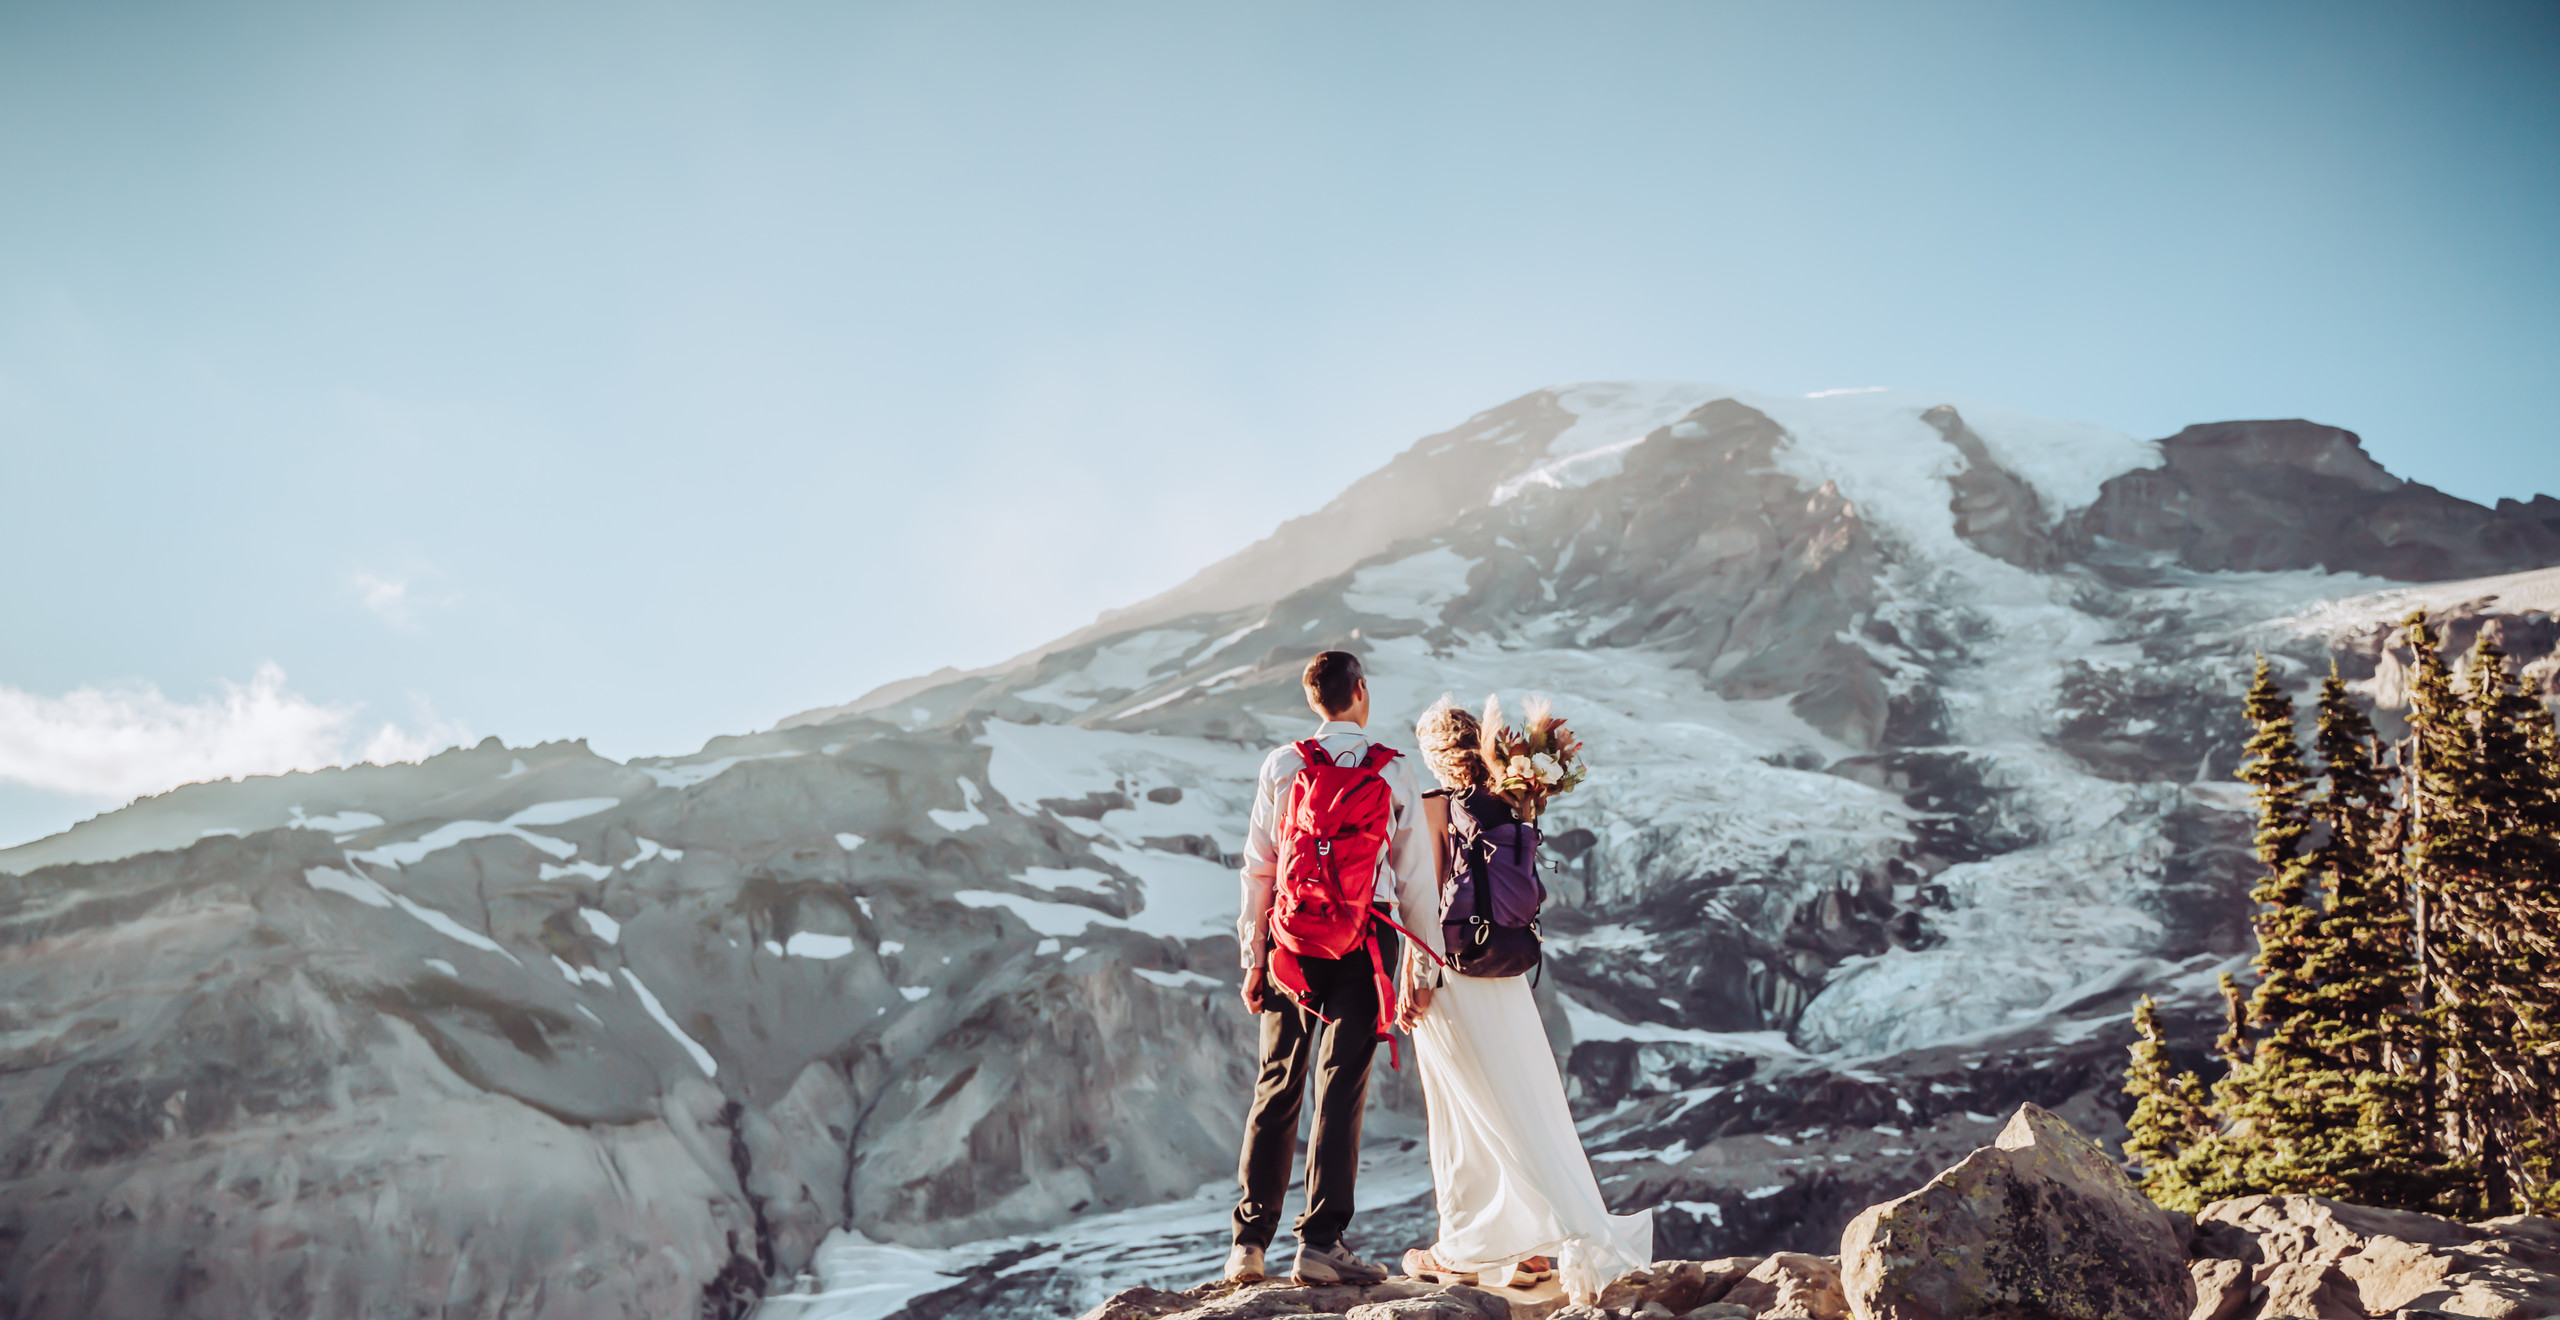 Bride and groom dressed up in wedding attire wearing hiking backpacks, standing on a rock facing the snow covered Mt. Rainier